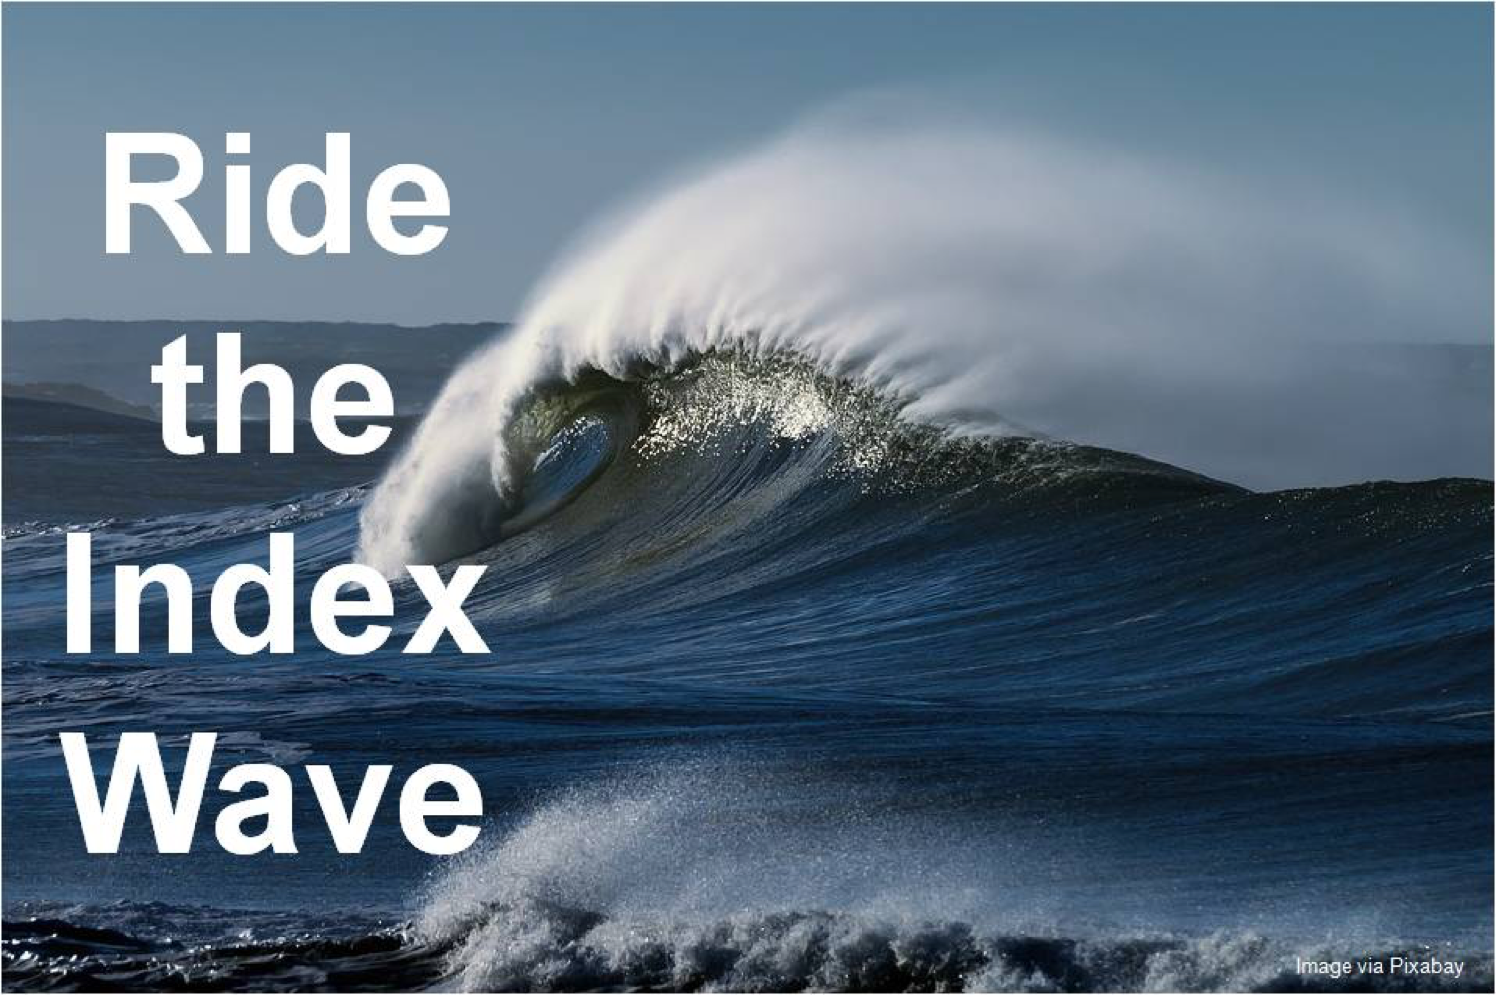 Picture of wave with lettering over to the left: Ride the Index Wave.